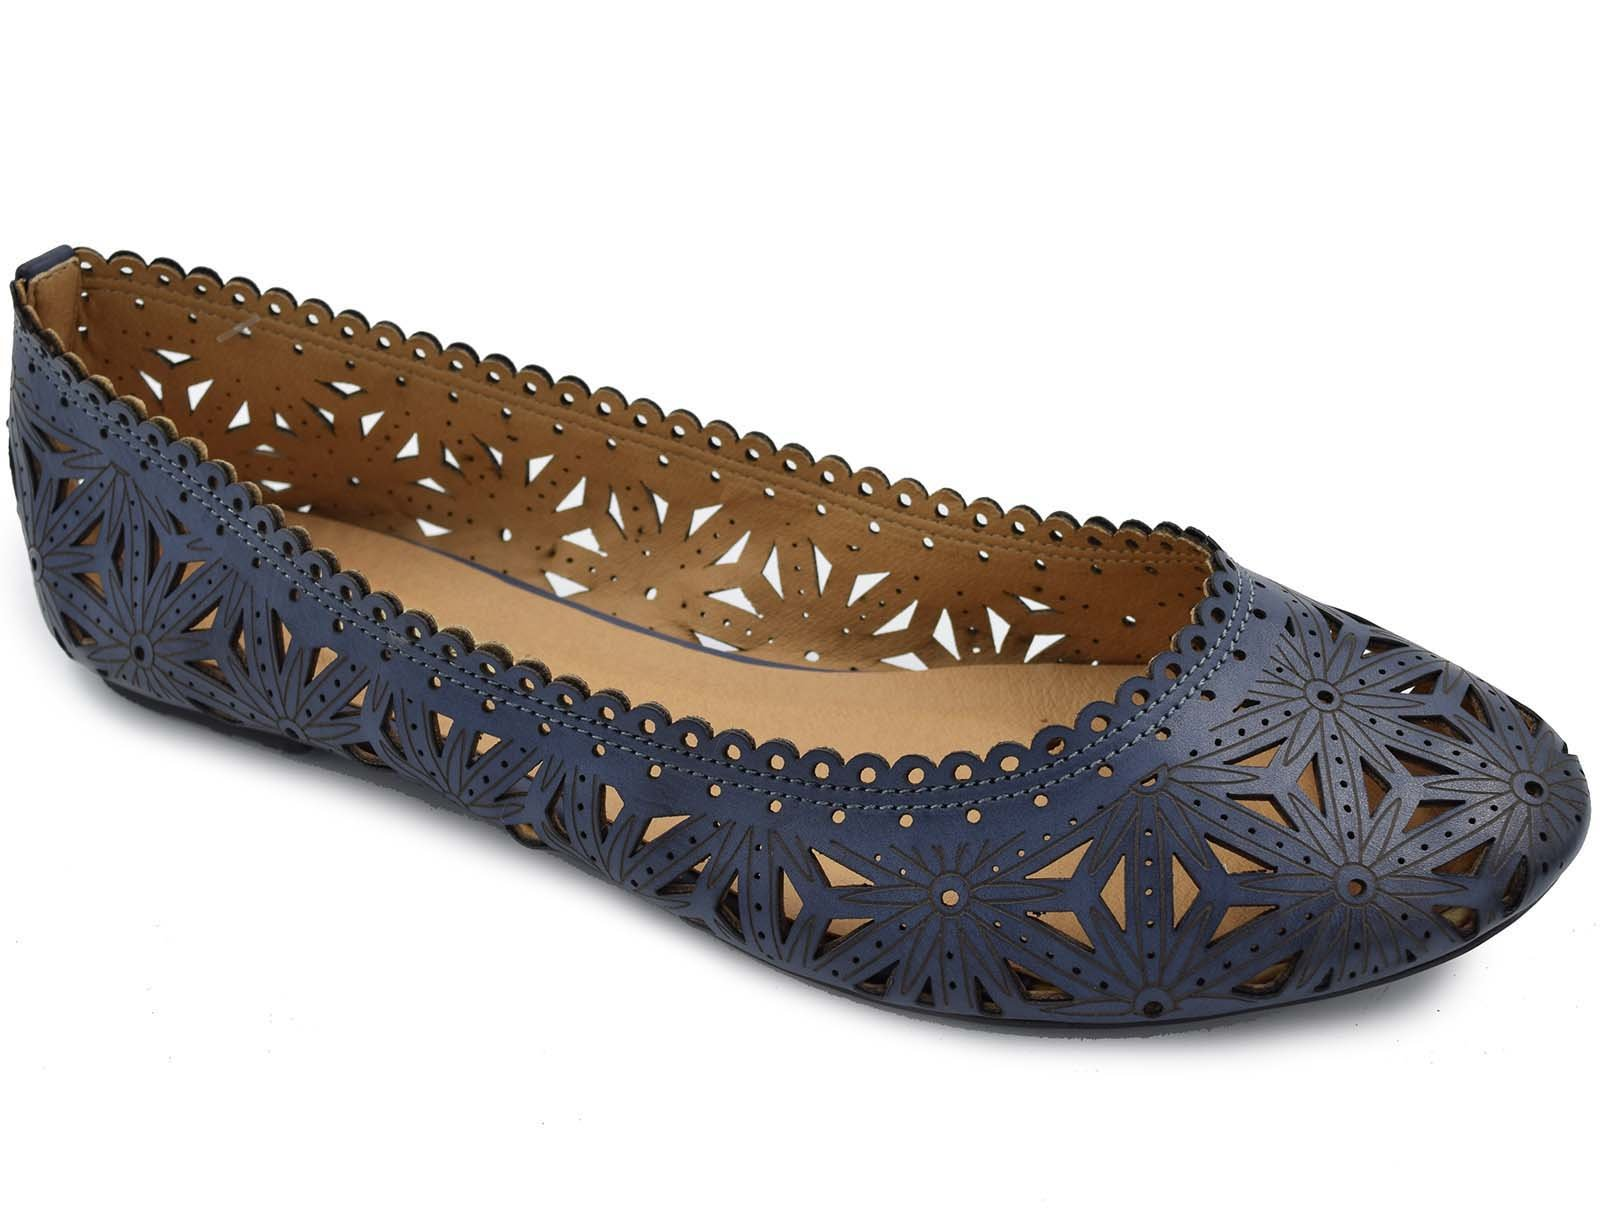 Greatonu Blue Cut-Out Closed Toe Comfort Flat Shoes For Women Size 9